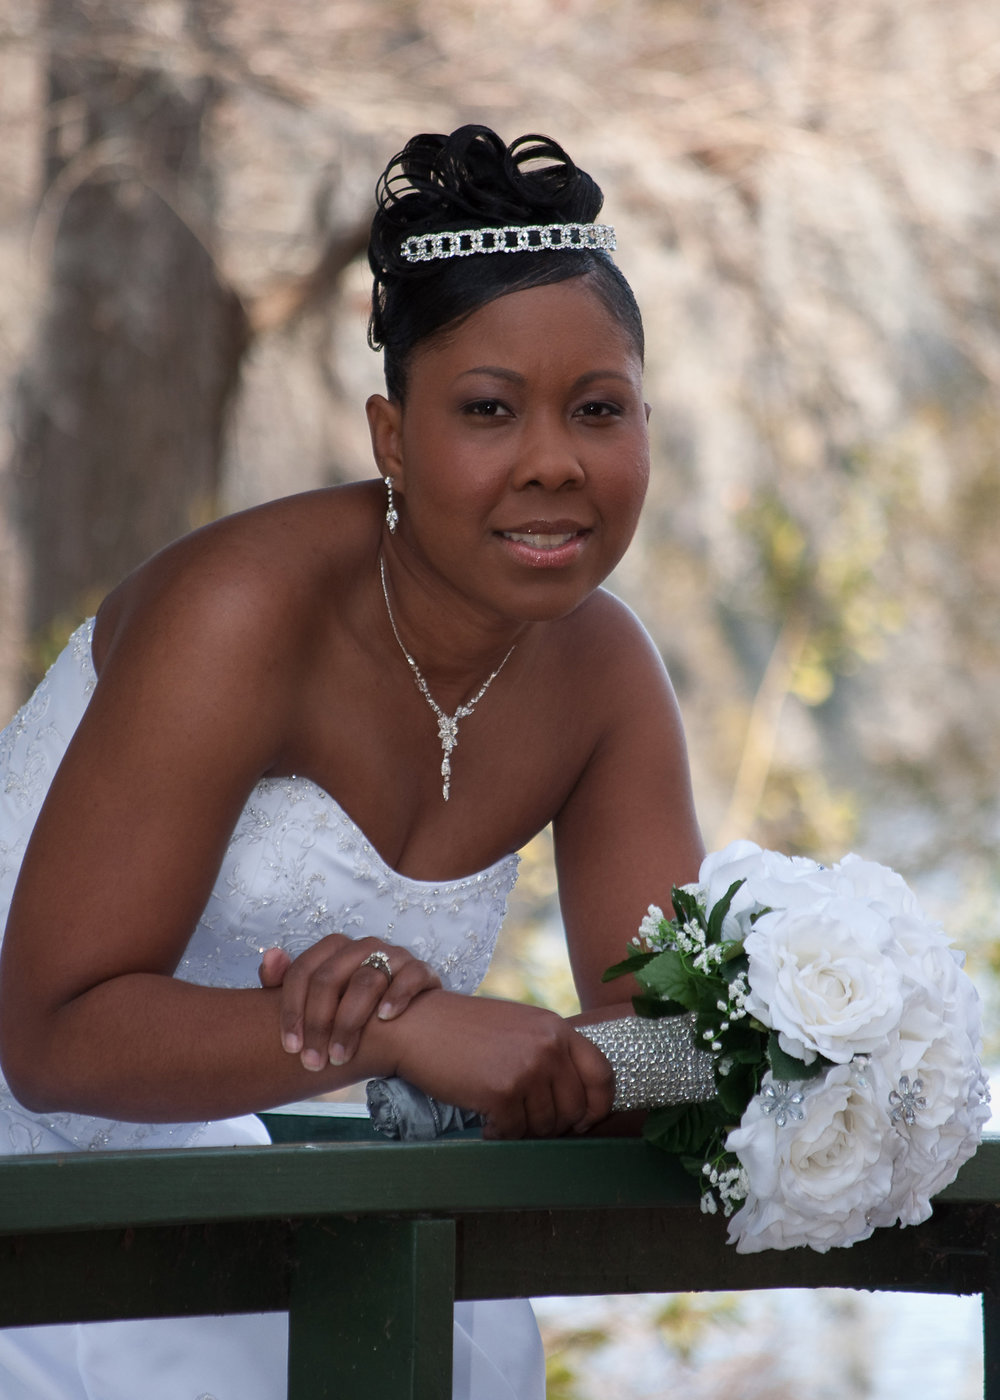 Bridal Portrait at Greenfield Lake in Wilmington, NC.